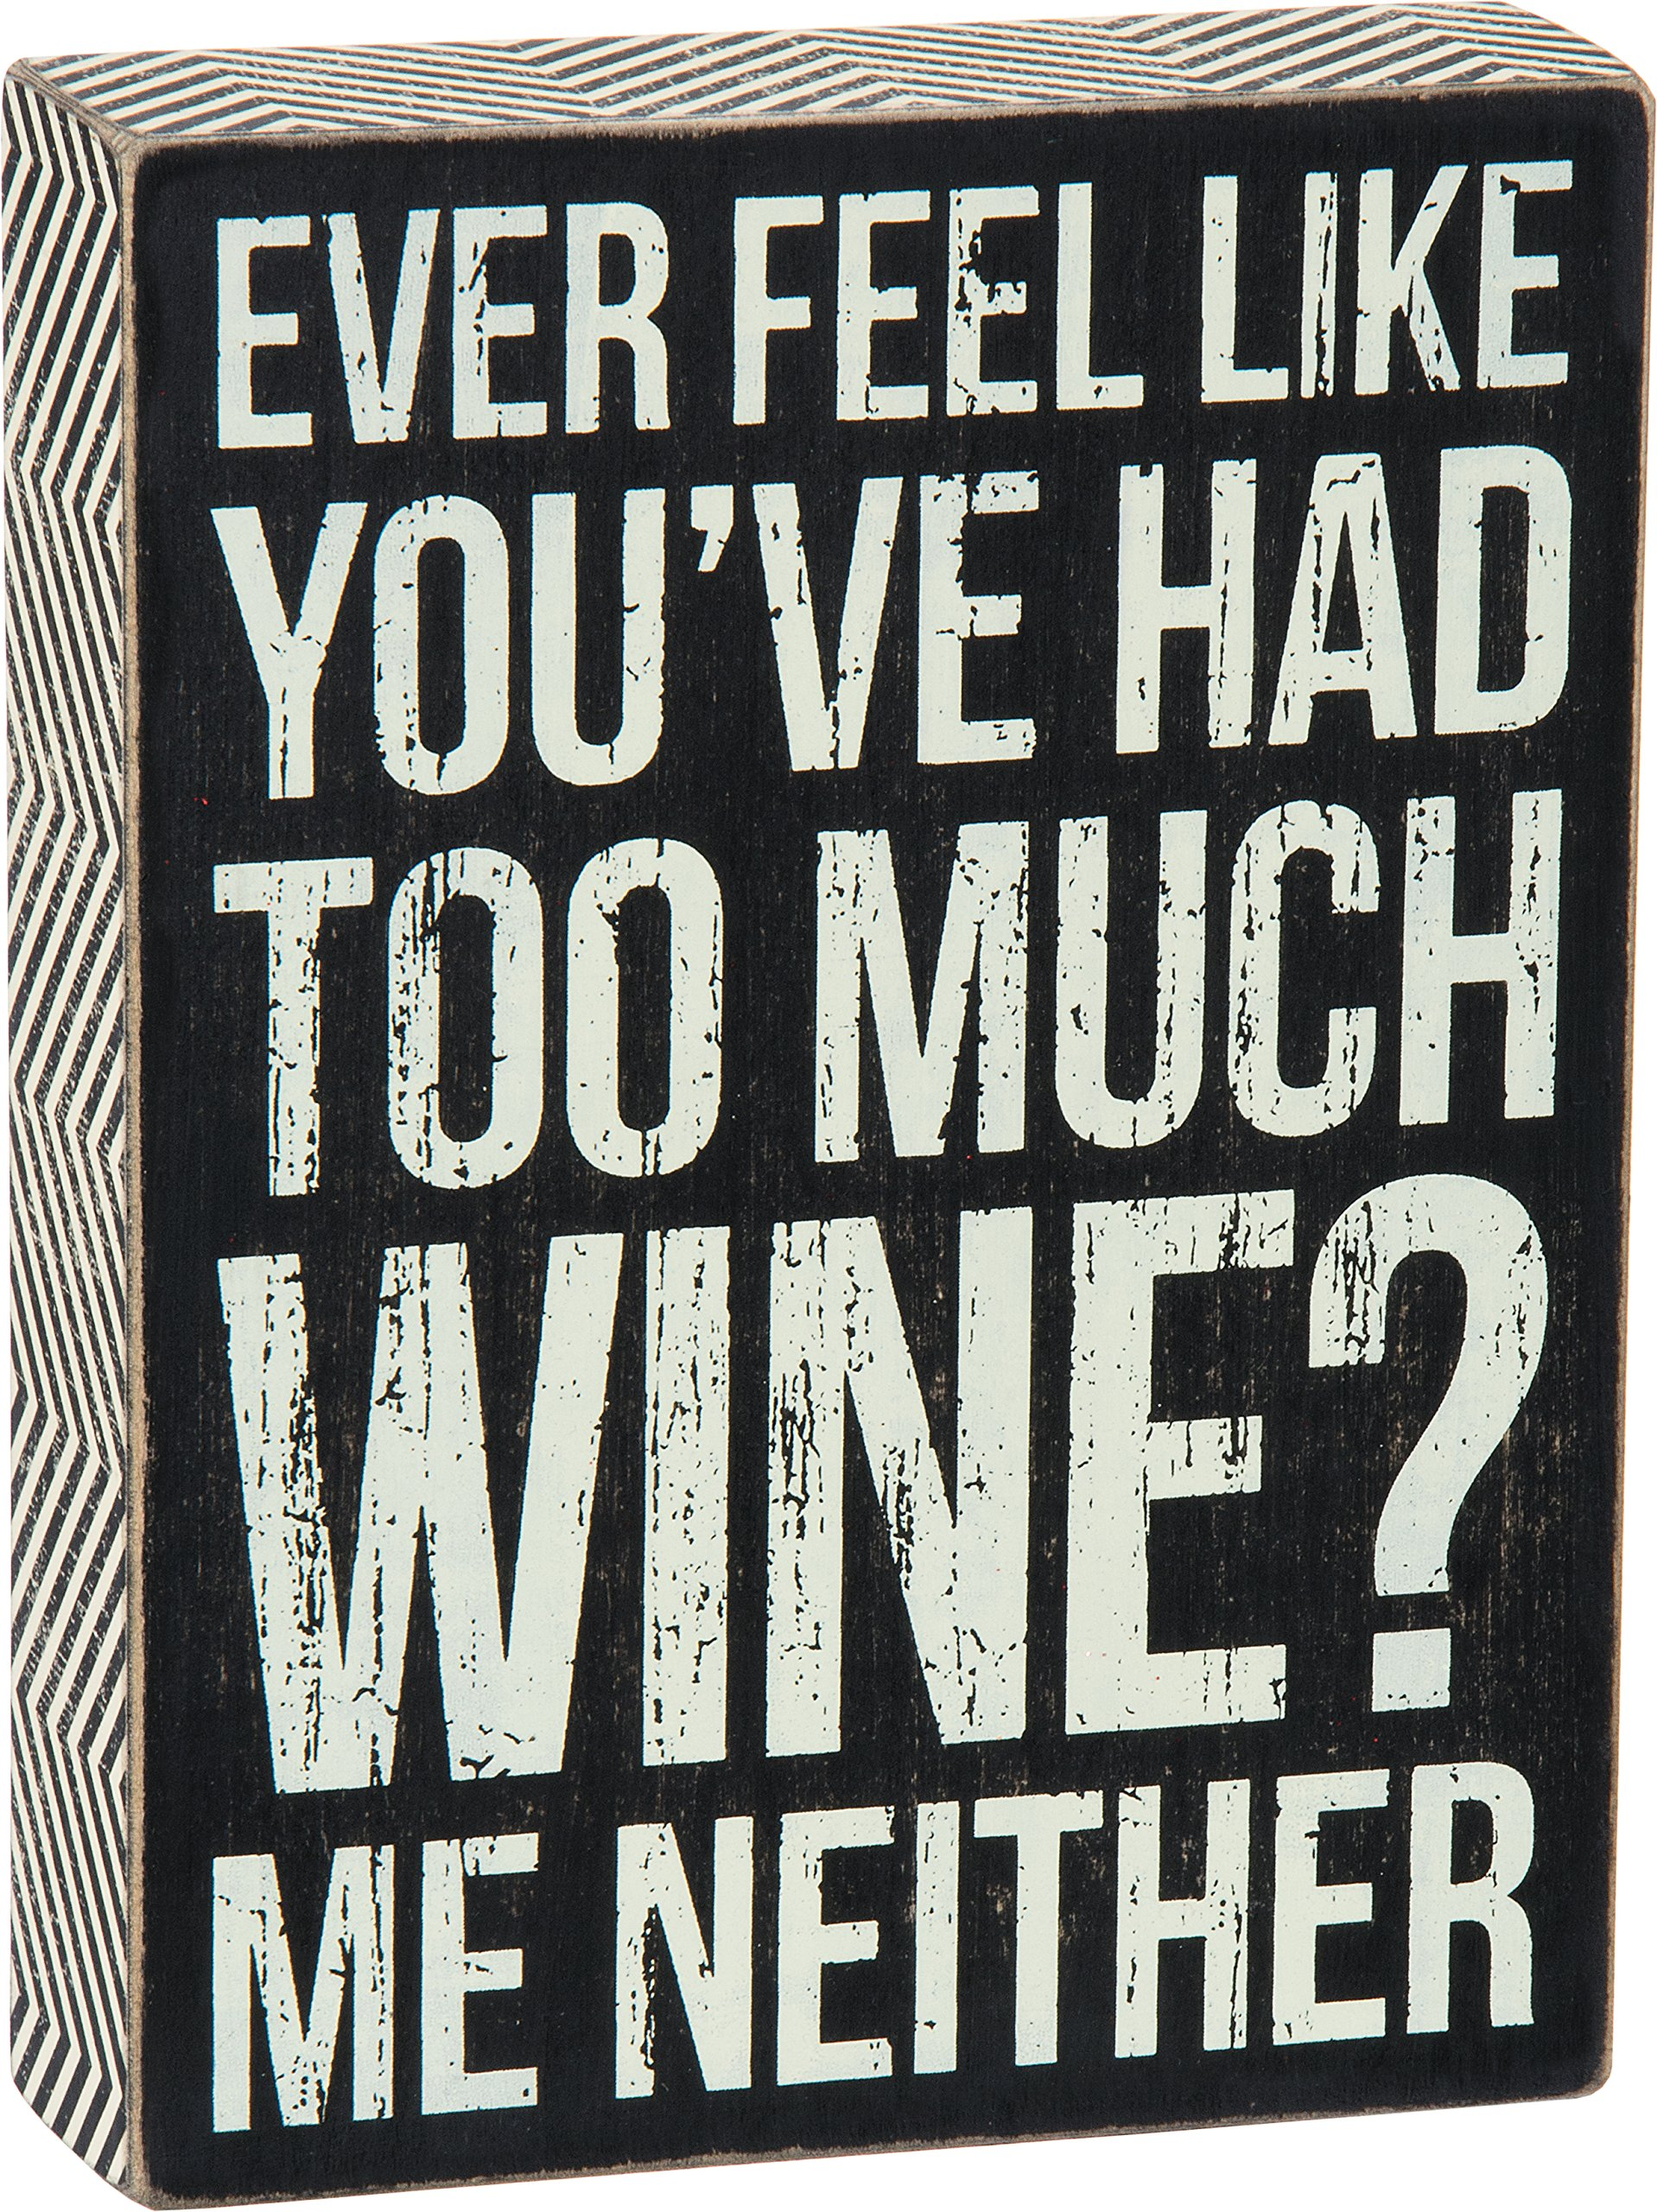 Primitives by Kathy 25140 Chevron Trimmed Box Sign, Too Much Wine, 6'' by 8'', Black/White